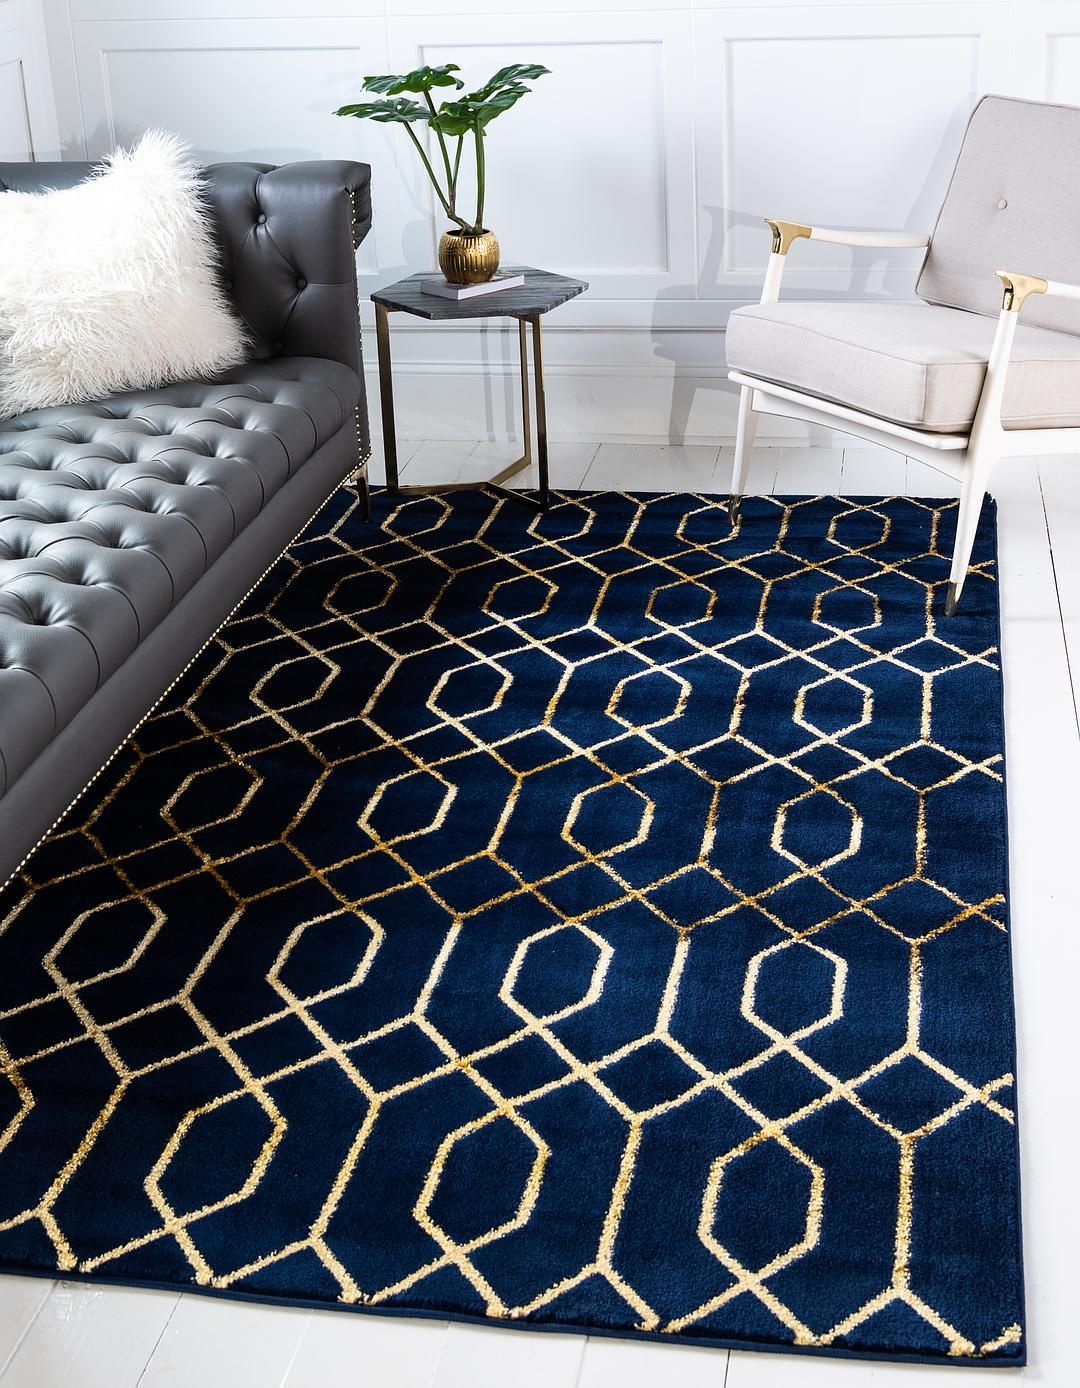 Blue And Gold Living Room Gold Living Room Blue And Gold Bedroom Gold Living